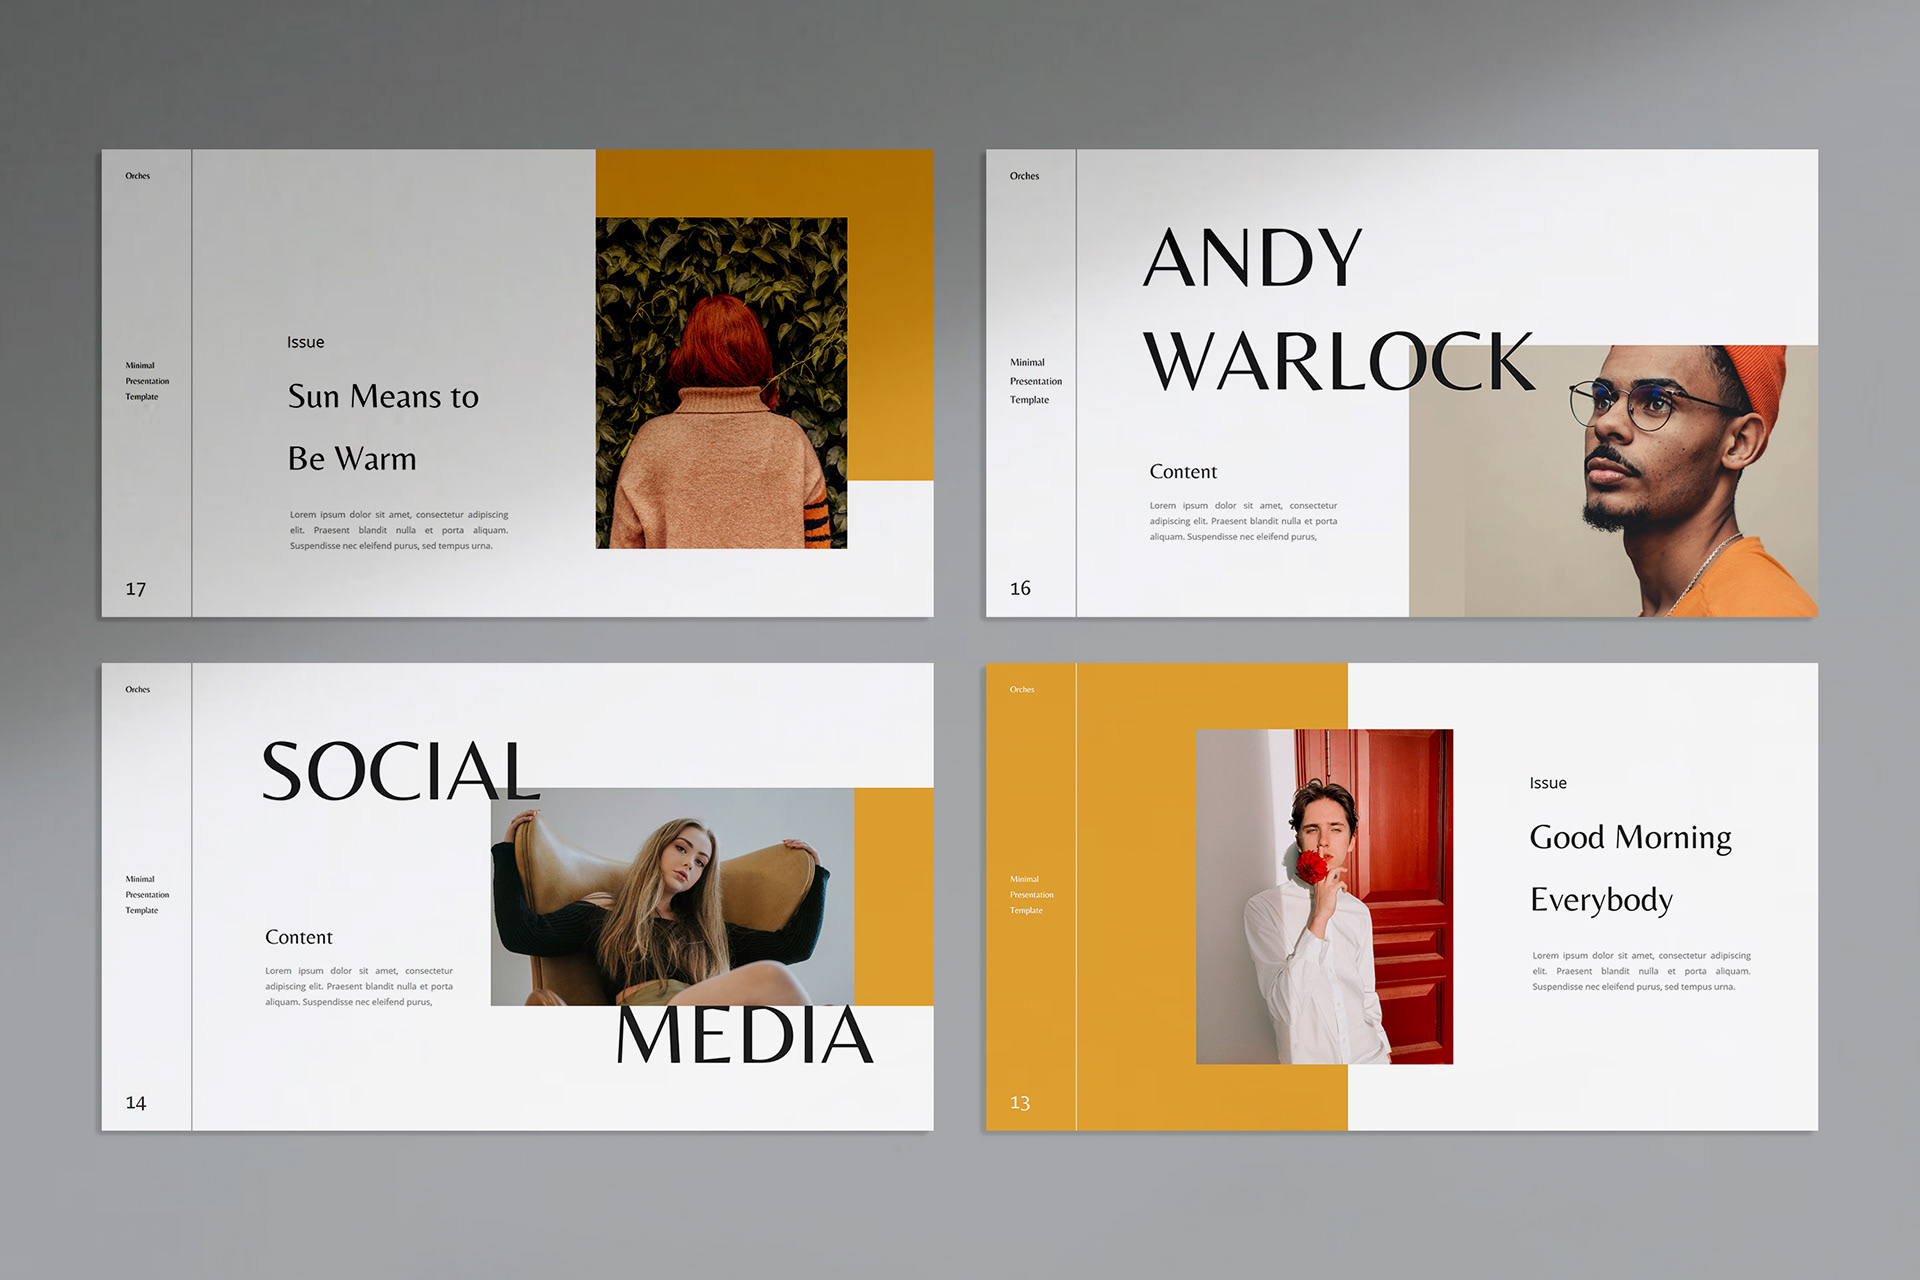 Presentation Design Tips to Captivate Your Audience